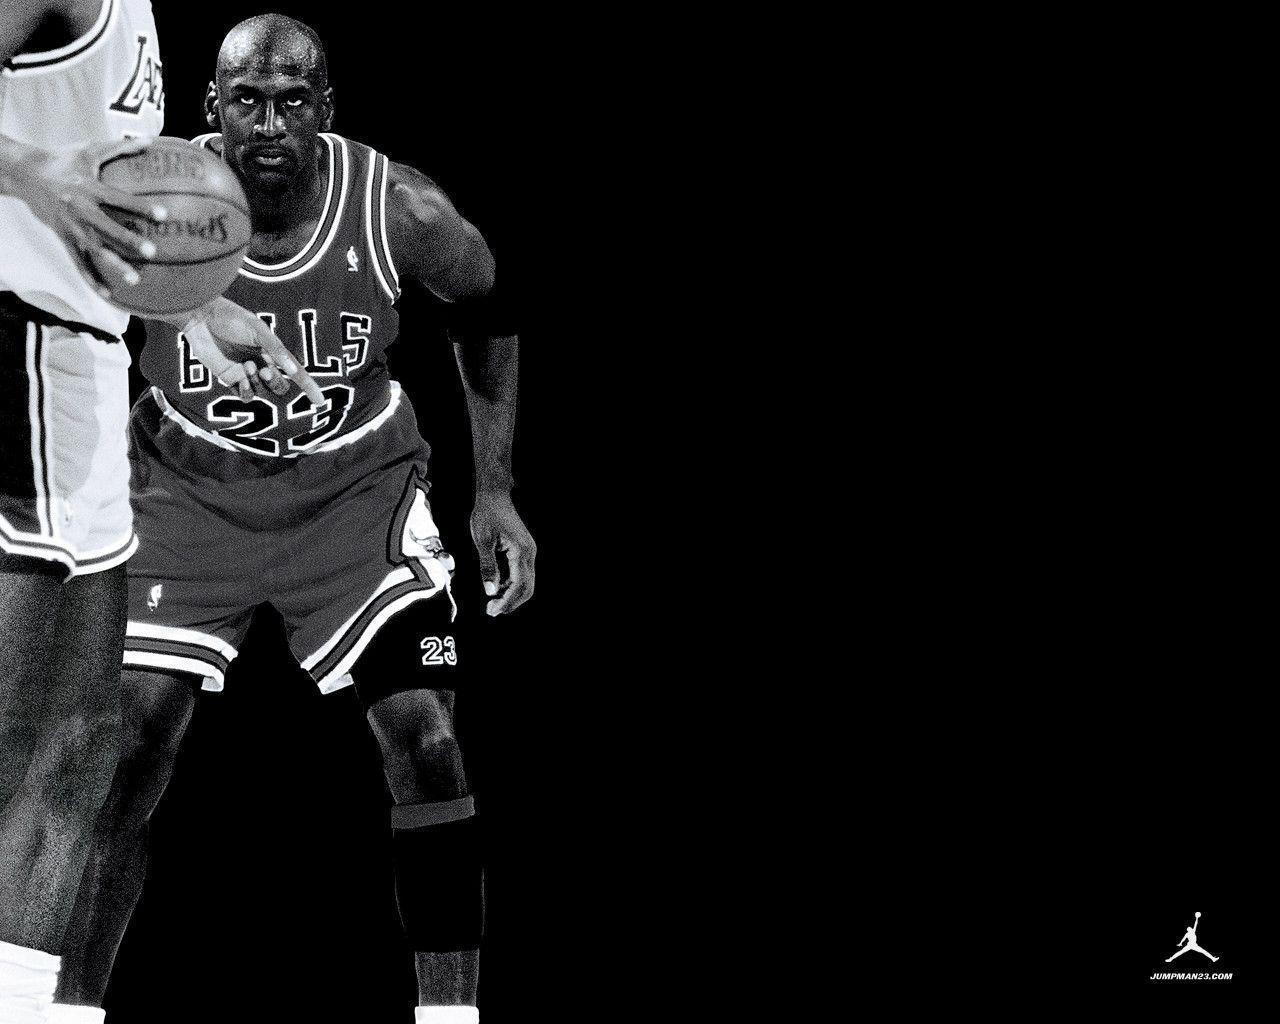 Michael Jordan Jersey Wallpaper: Michael Jordan HD Wallpapers